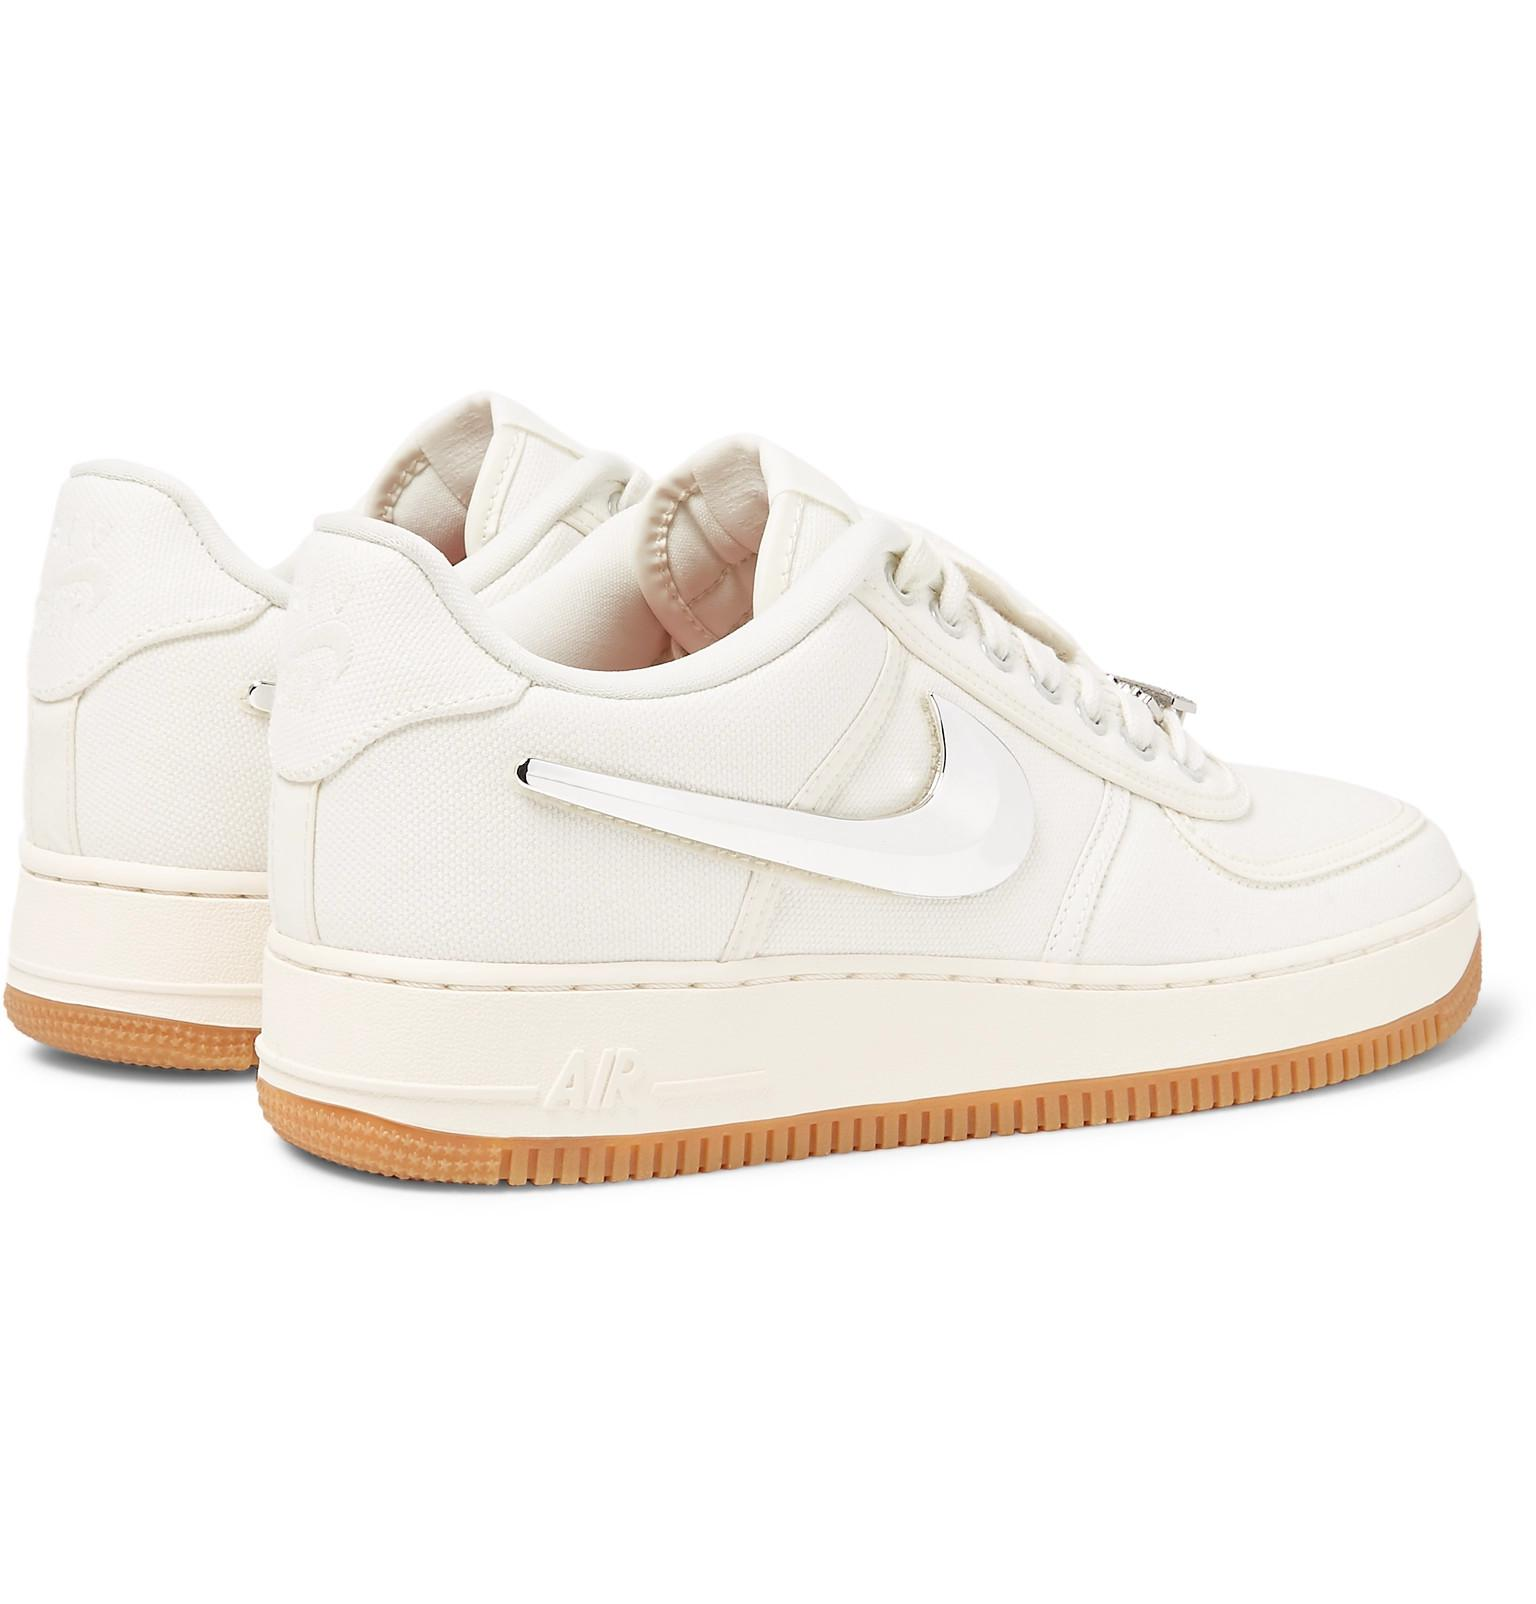 6380cec61a9c6d Nike + Travis Scott Air Force 1 Canvas Sneakers in White for Men - Lyst